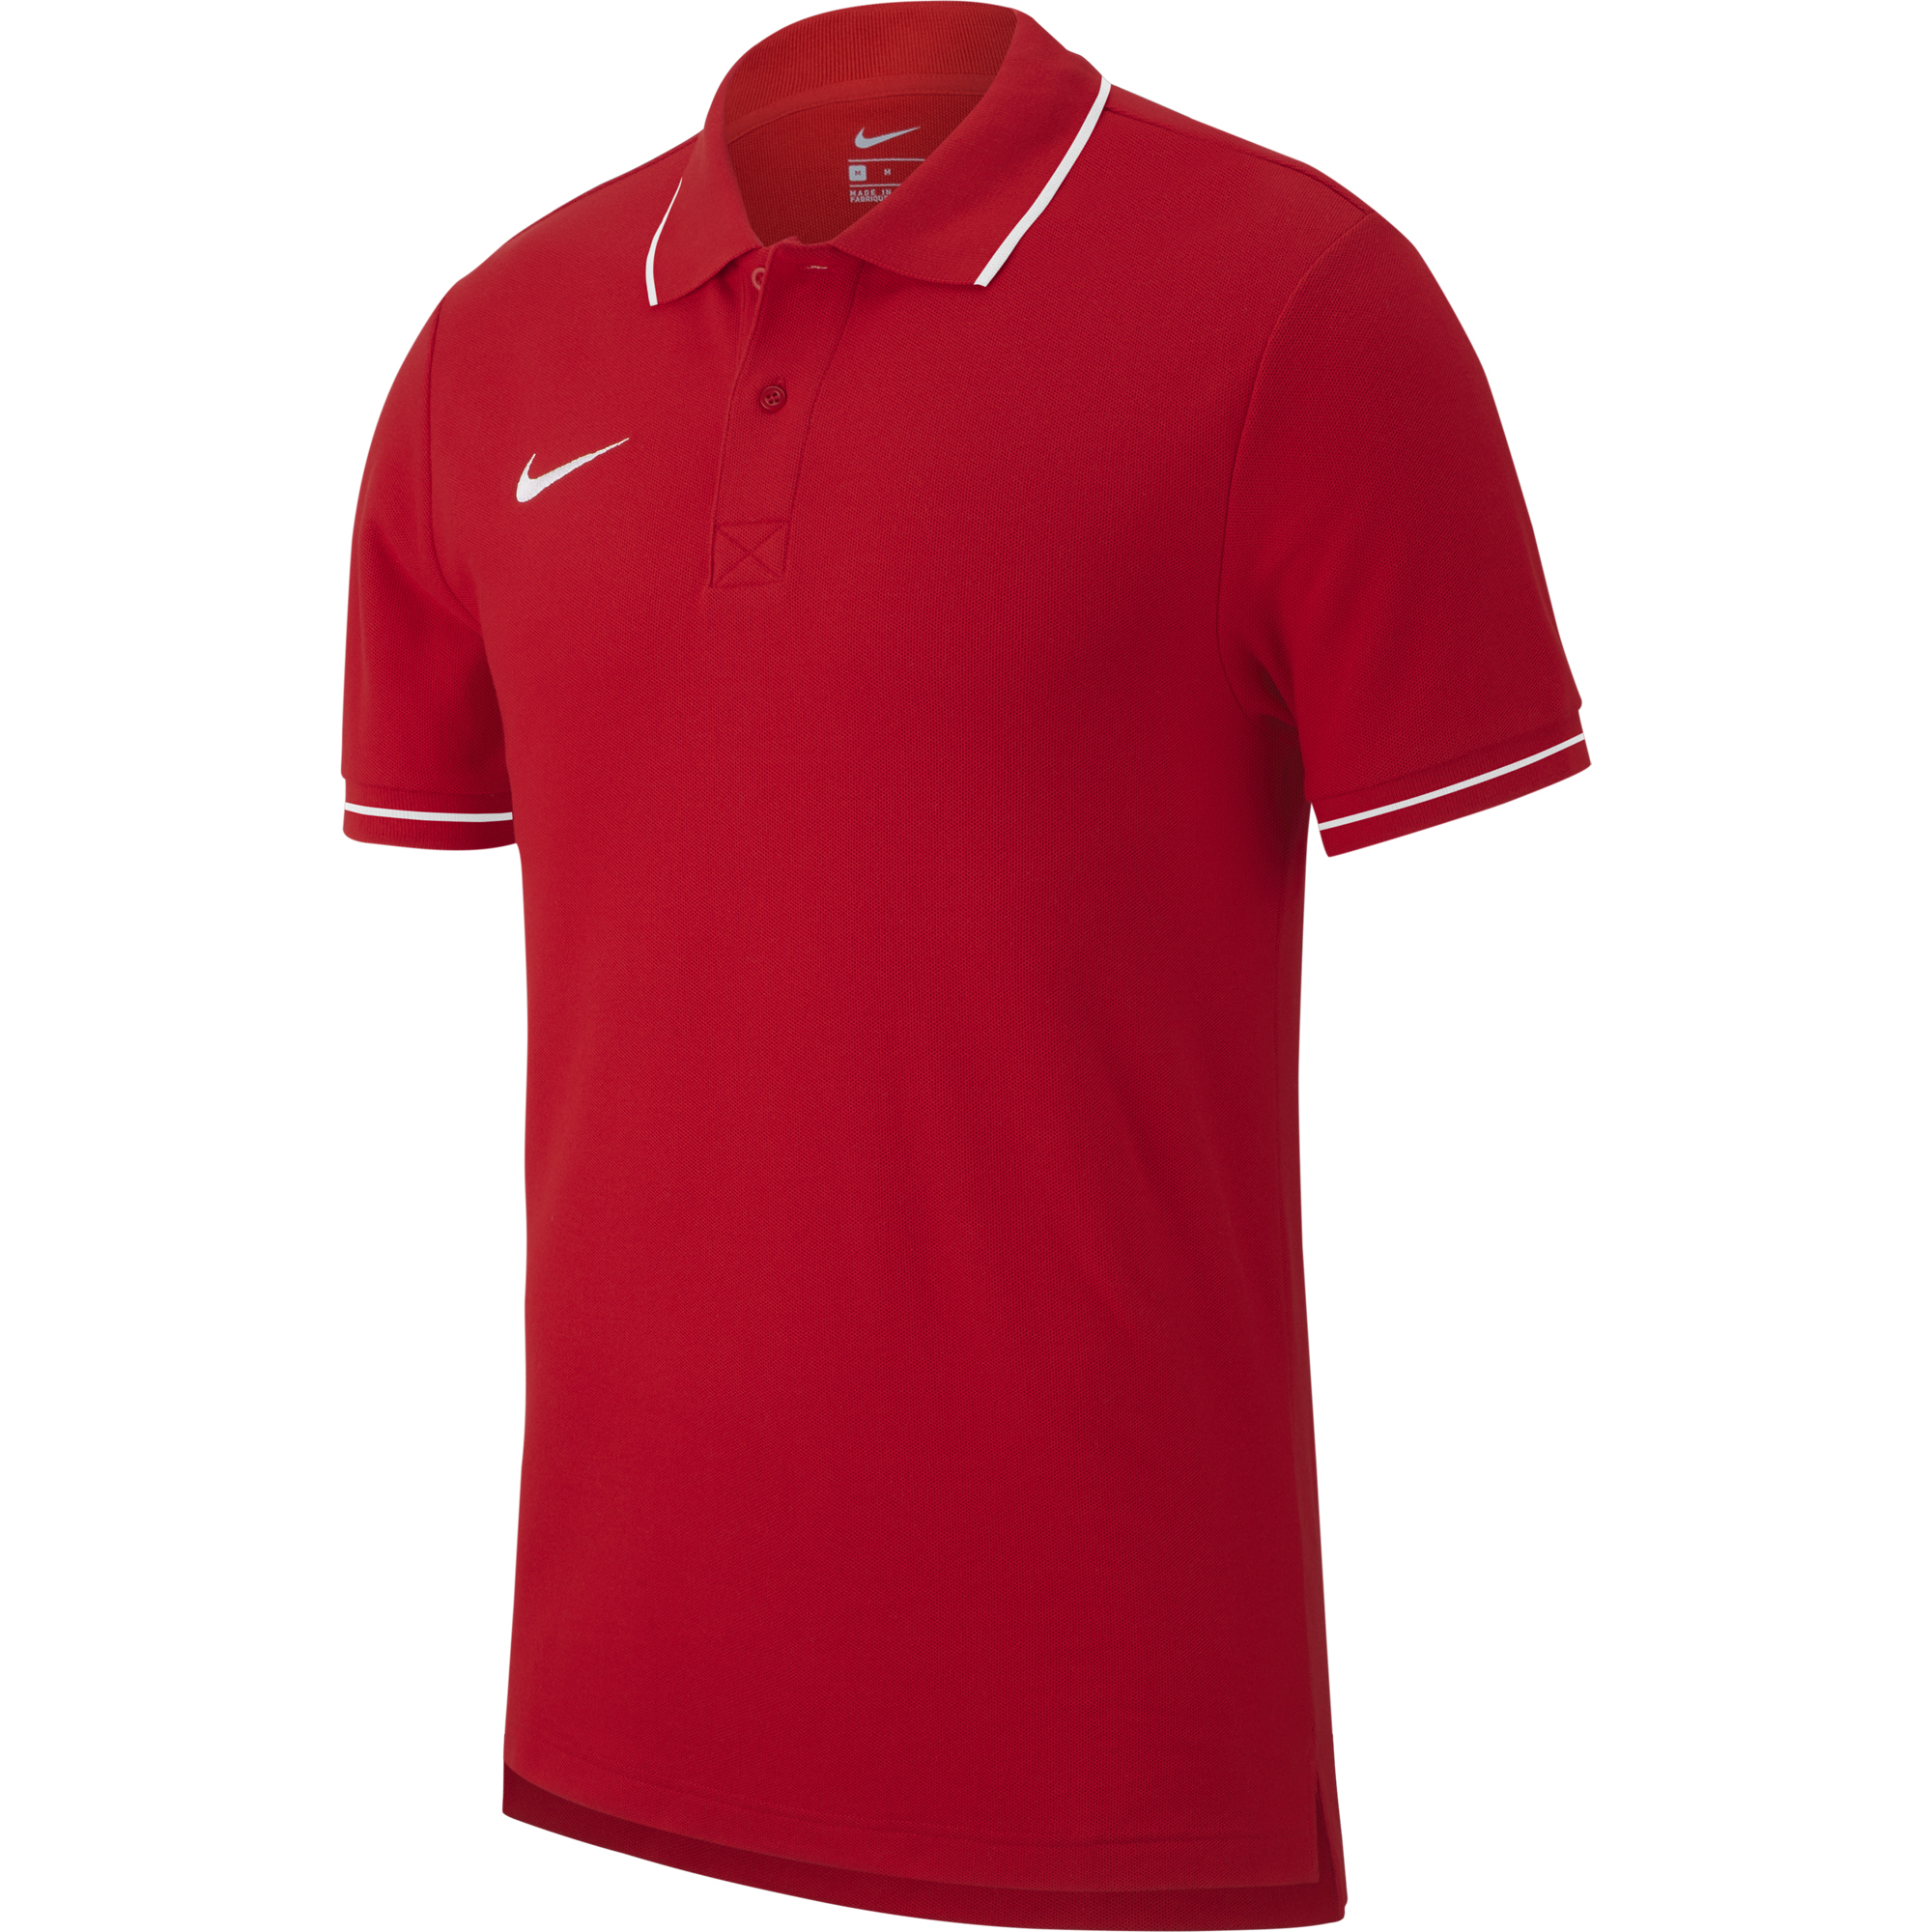 0c5667a6 Nike® Team Club Polo Top - Red - 2XL | Hope Education